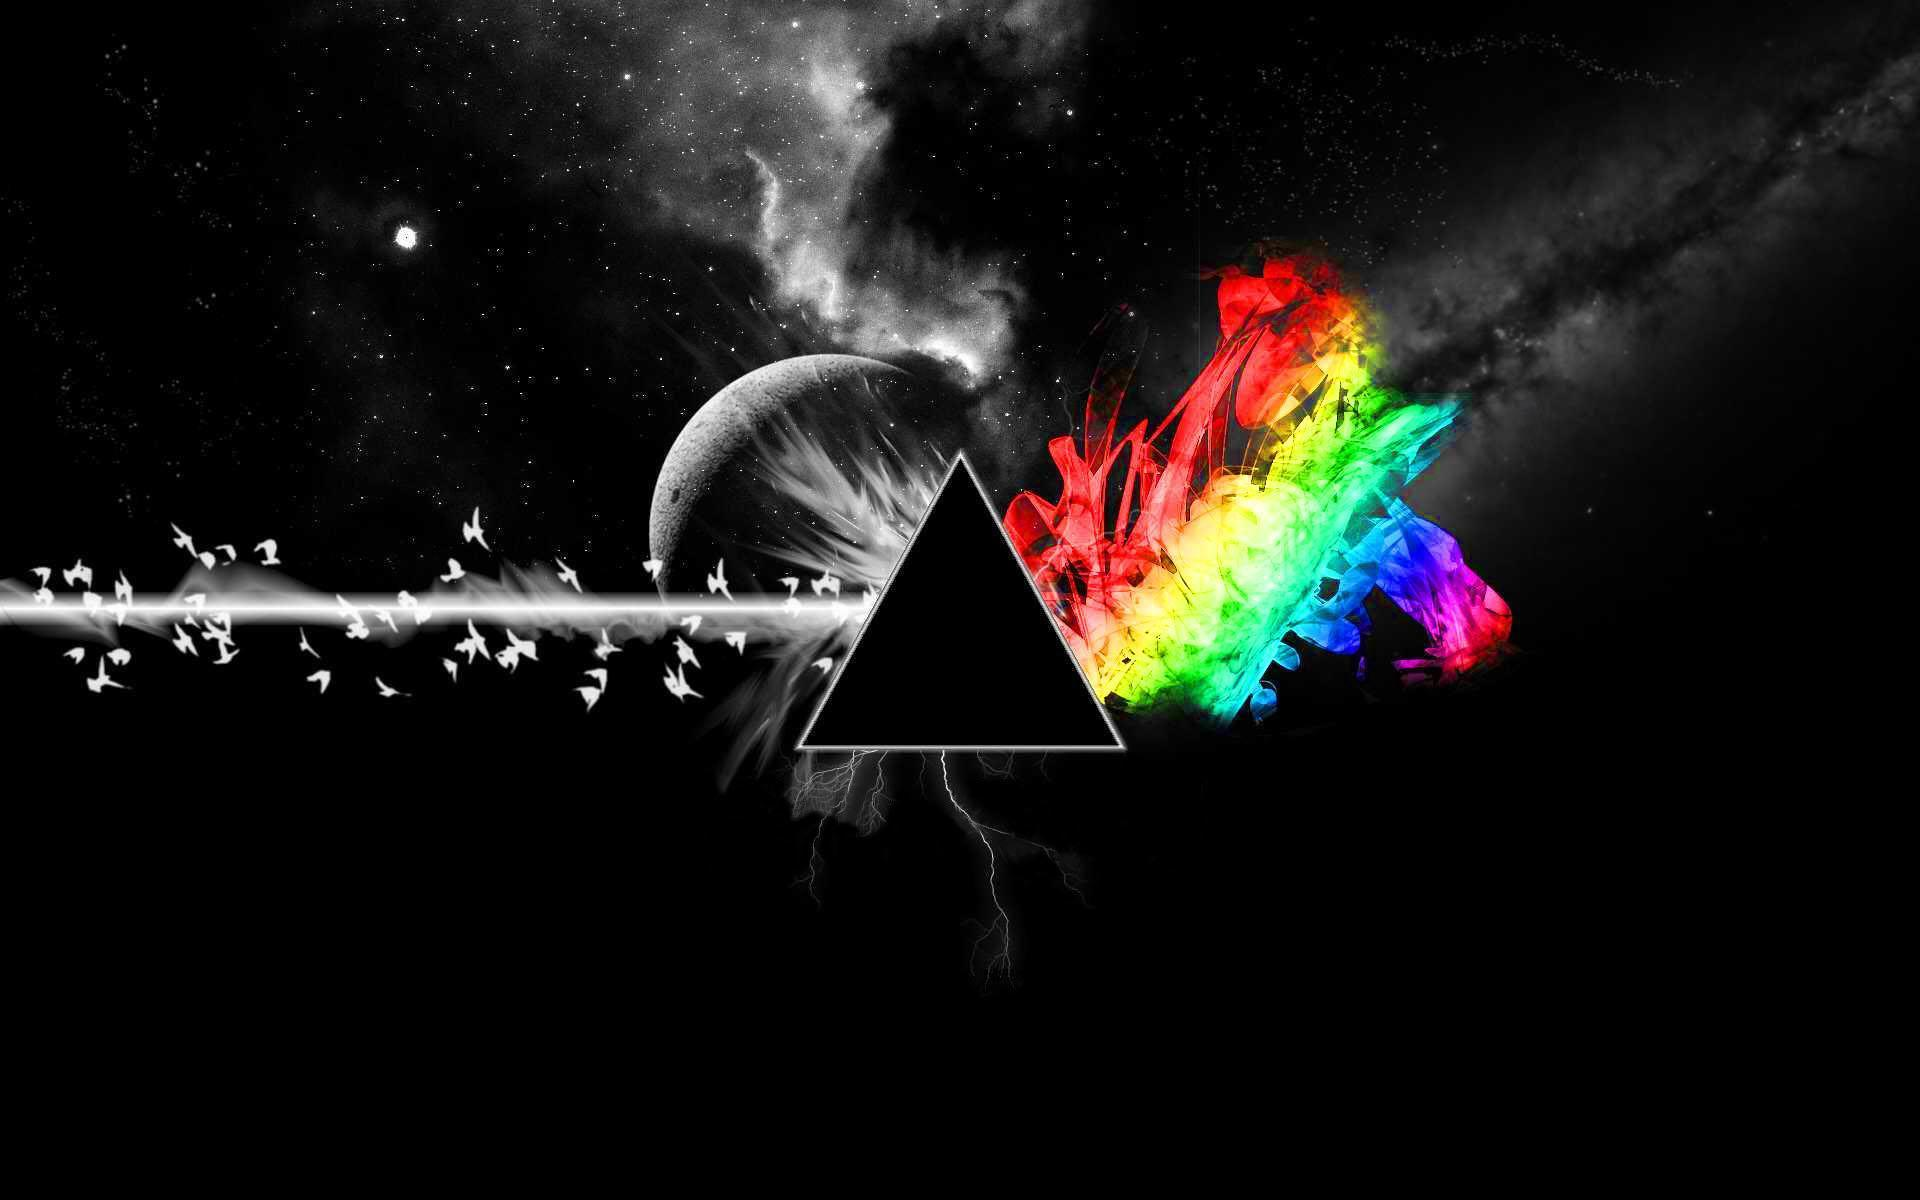 Pink floyd wallpapers high quality download free - Pink floyd images high resolution ...